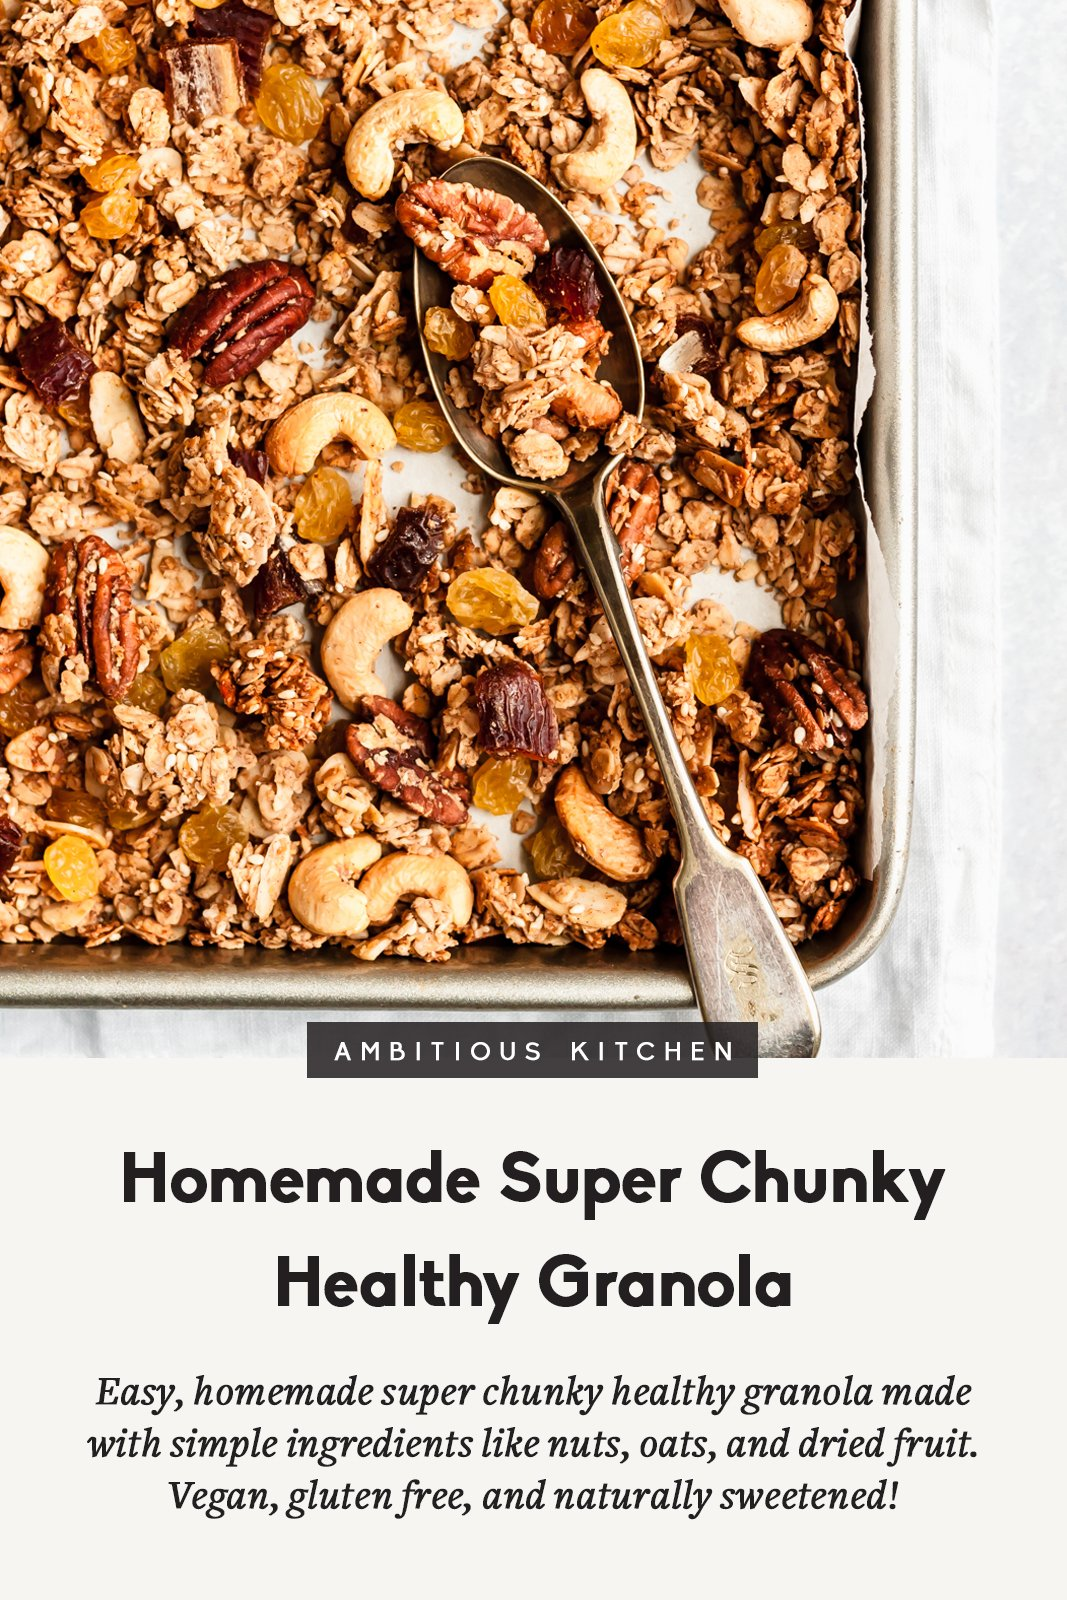 homemade healthy granola on a baking tray with a spoon and text underneath